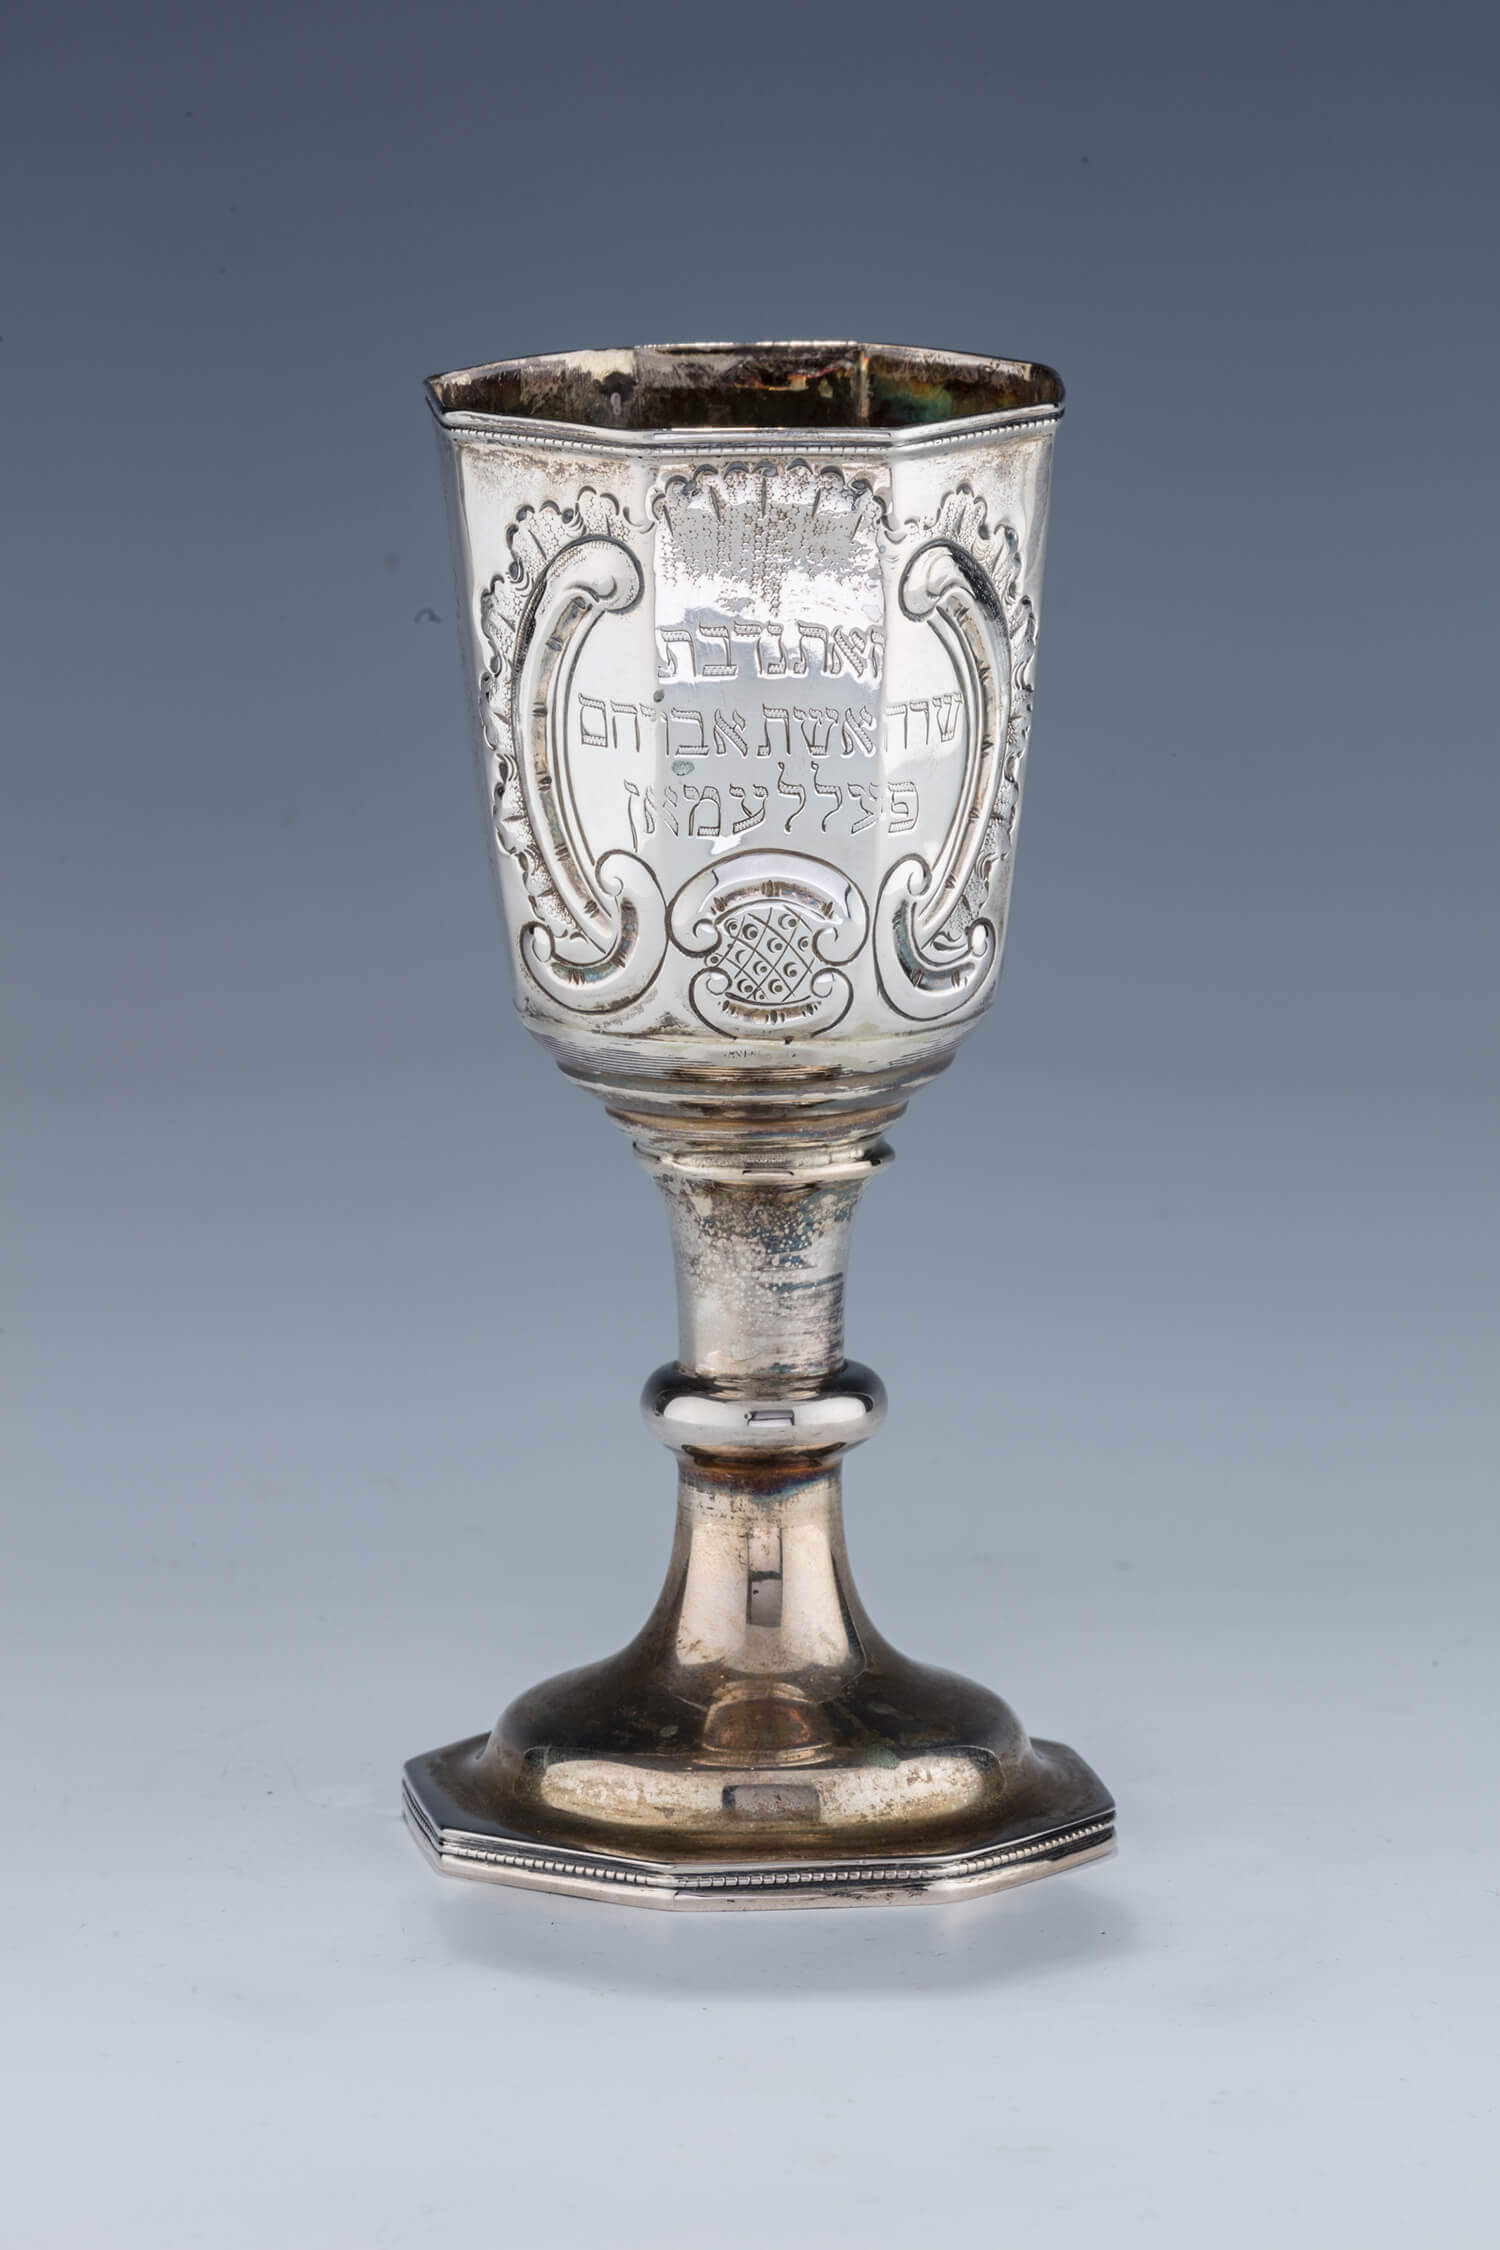 059. A LARGE SILVER KIDDUSH CUP